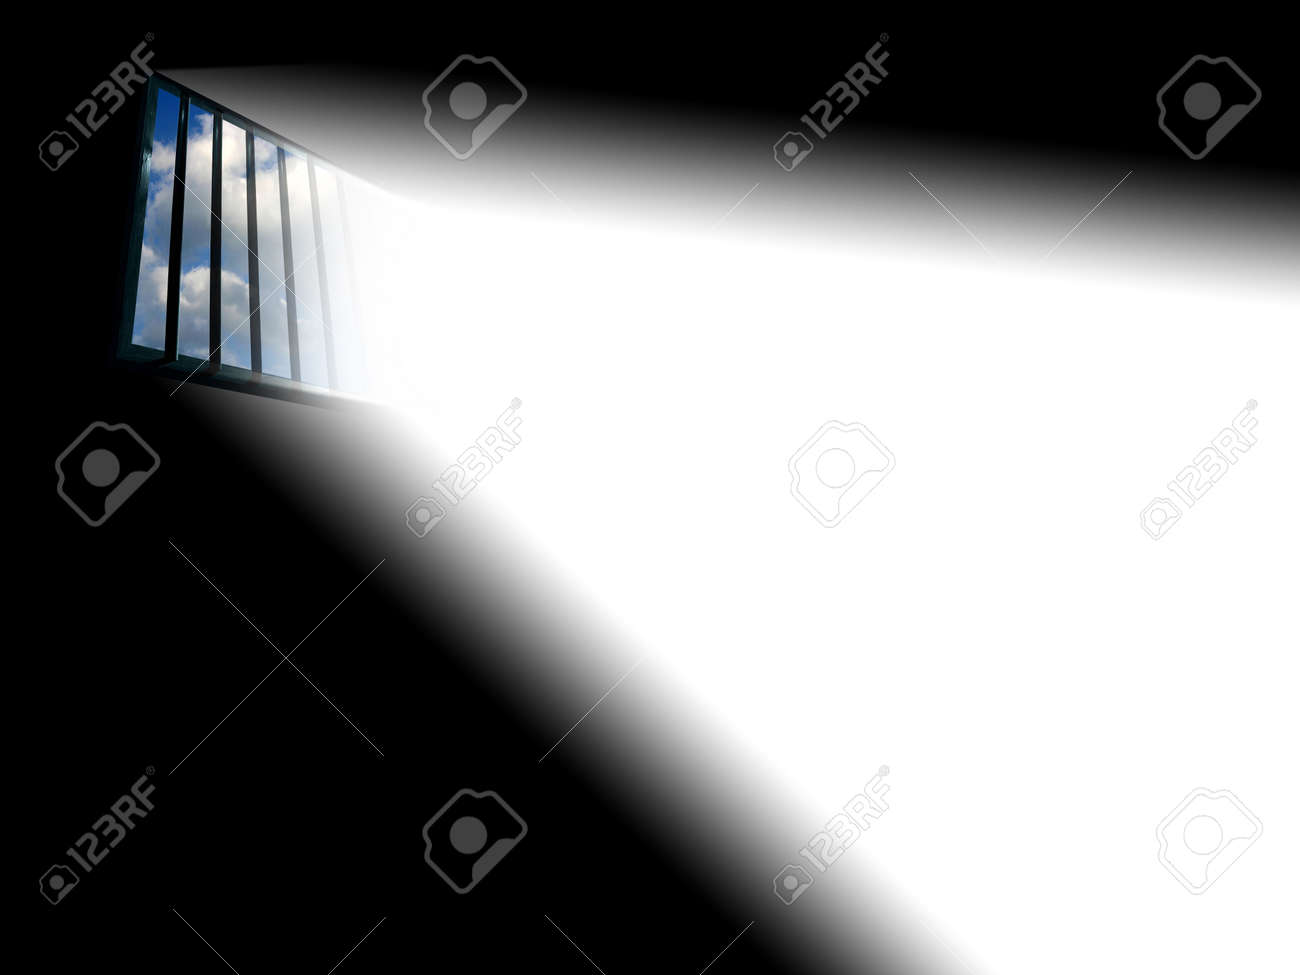 Light through the latticed prison window Stock Photo - 366138